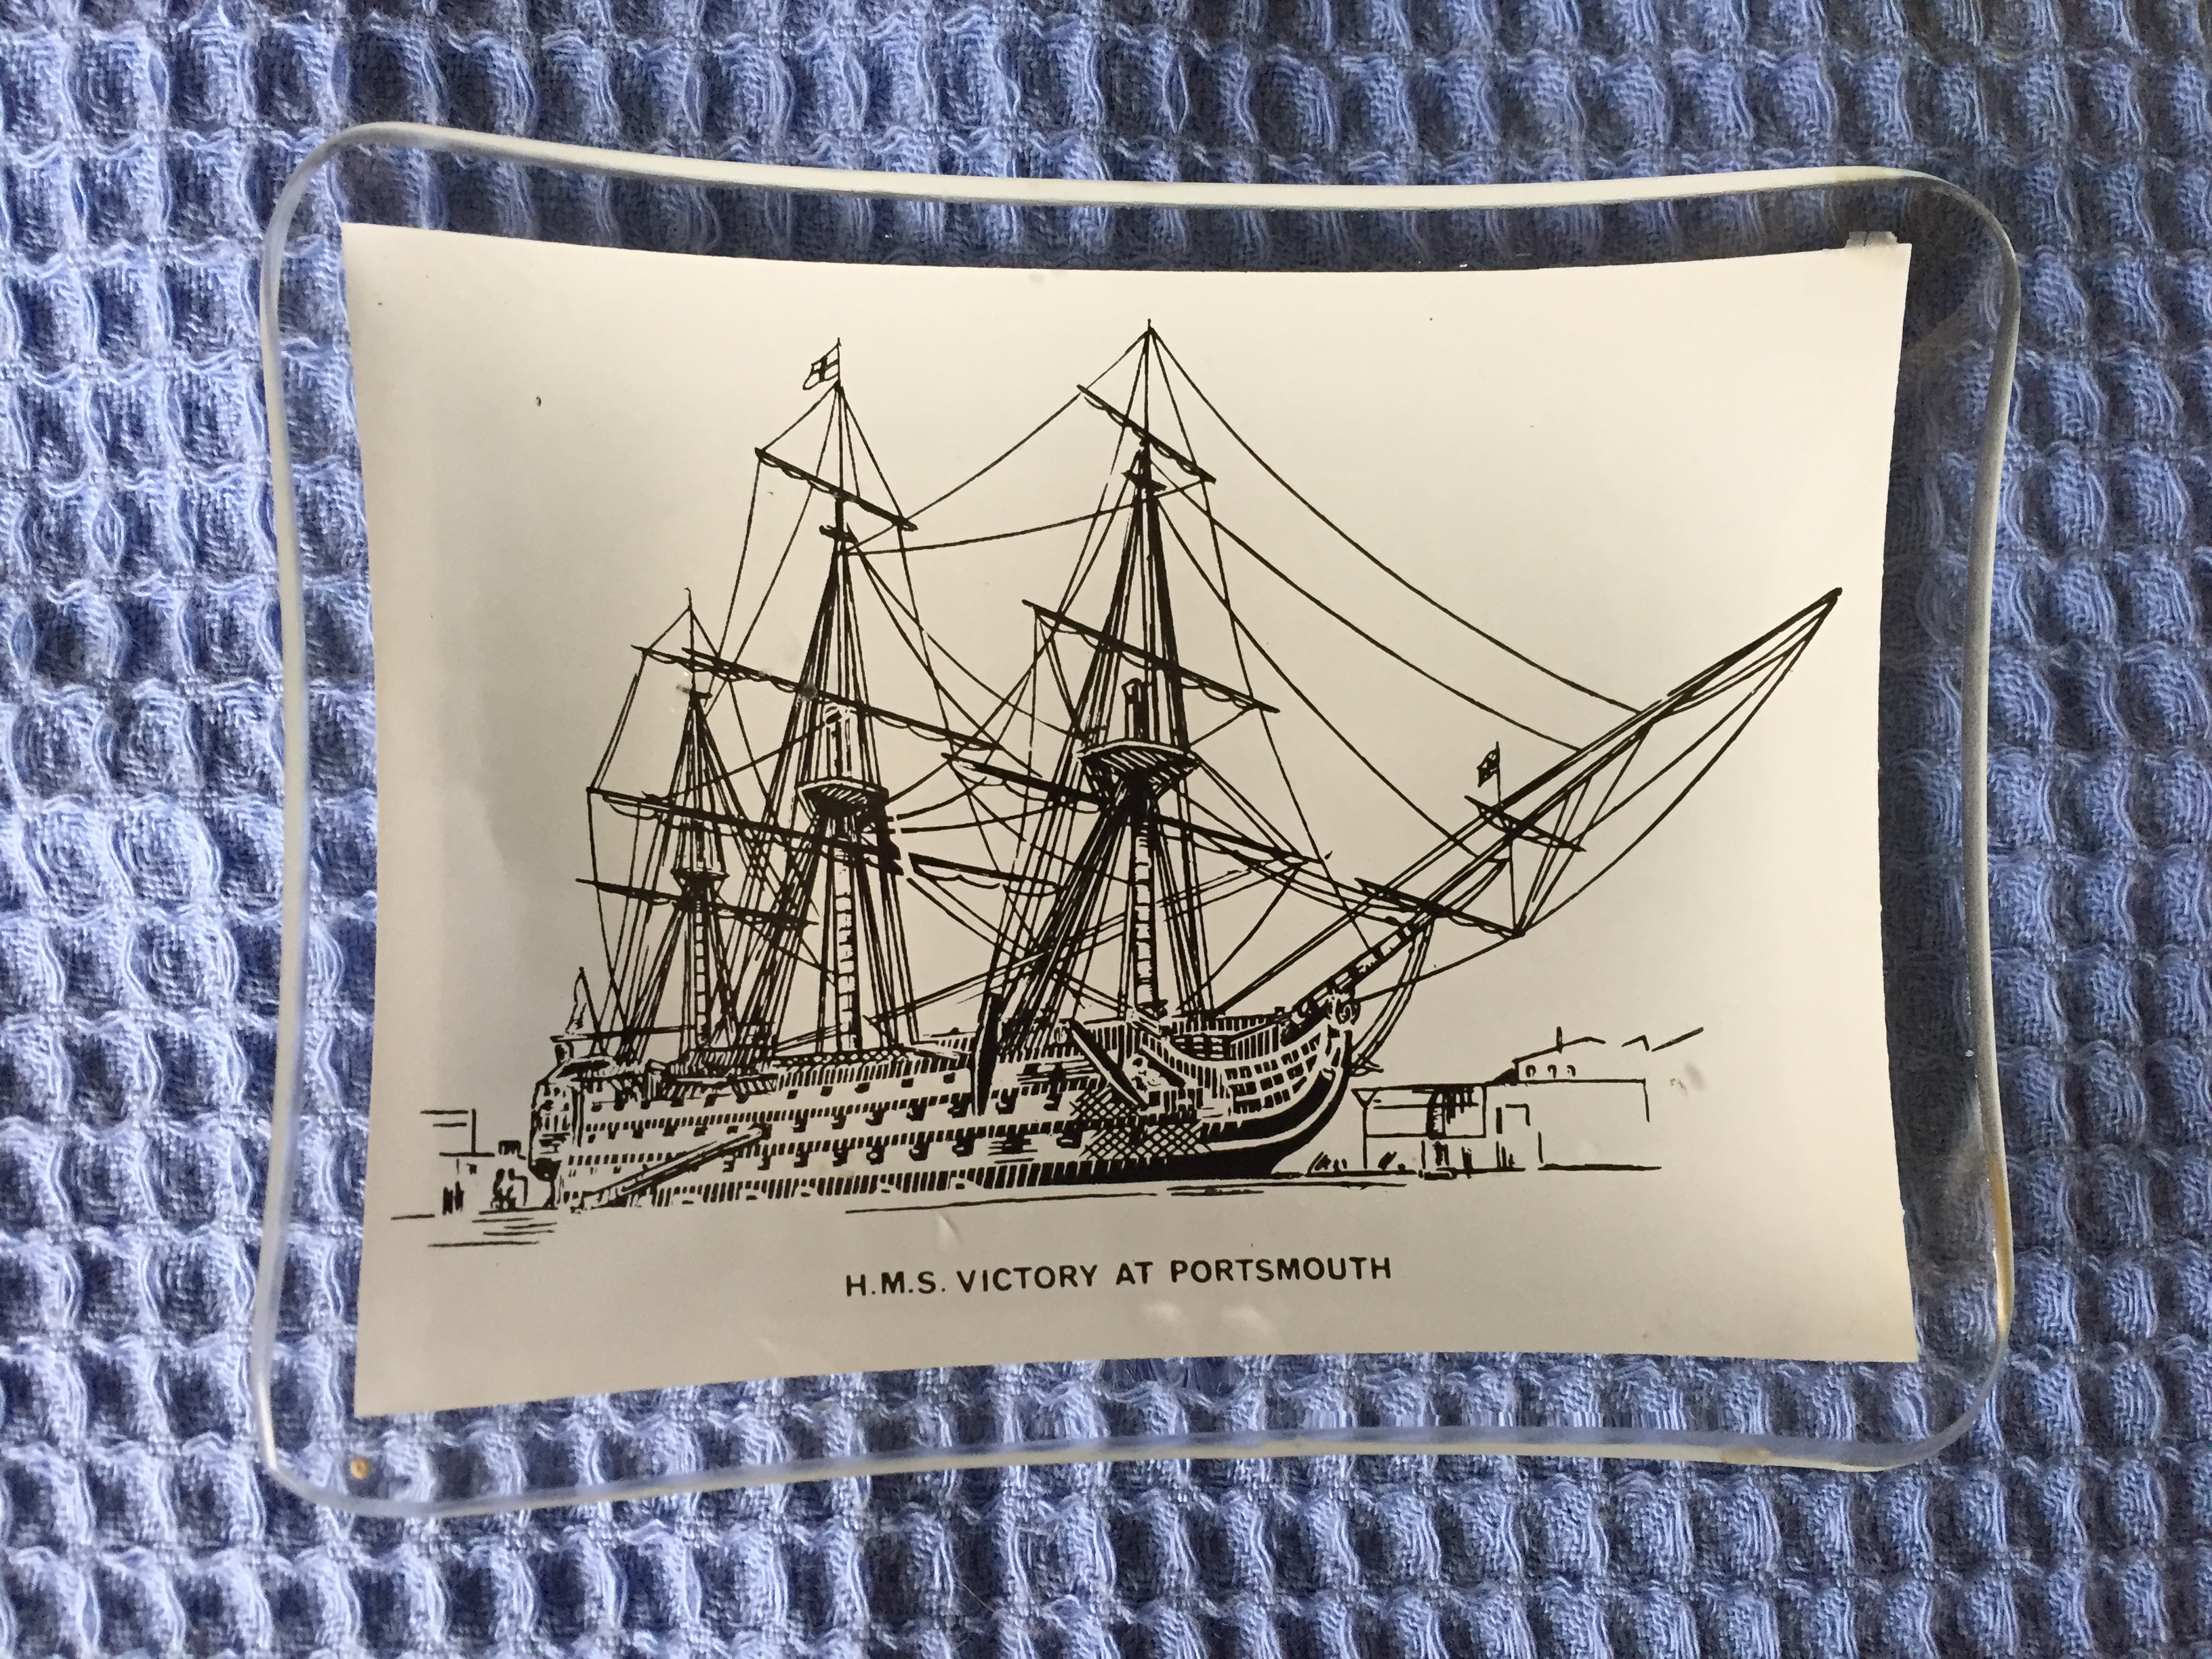 SOUVENIR GLASS DISH FROM THE FAMOUS MOORED VESSEL THE HMS VICTORY